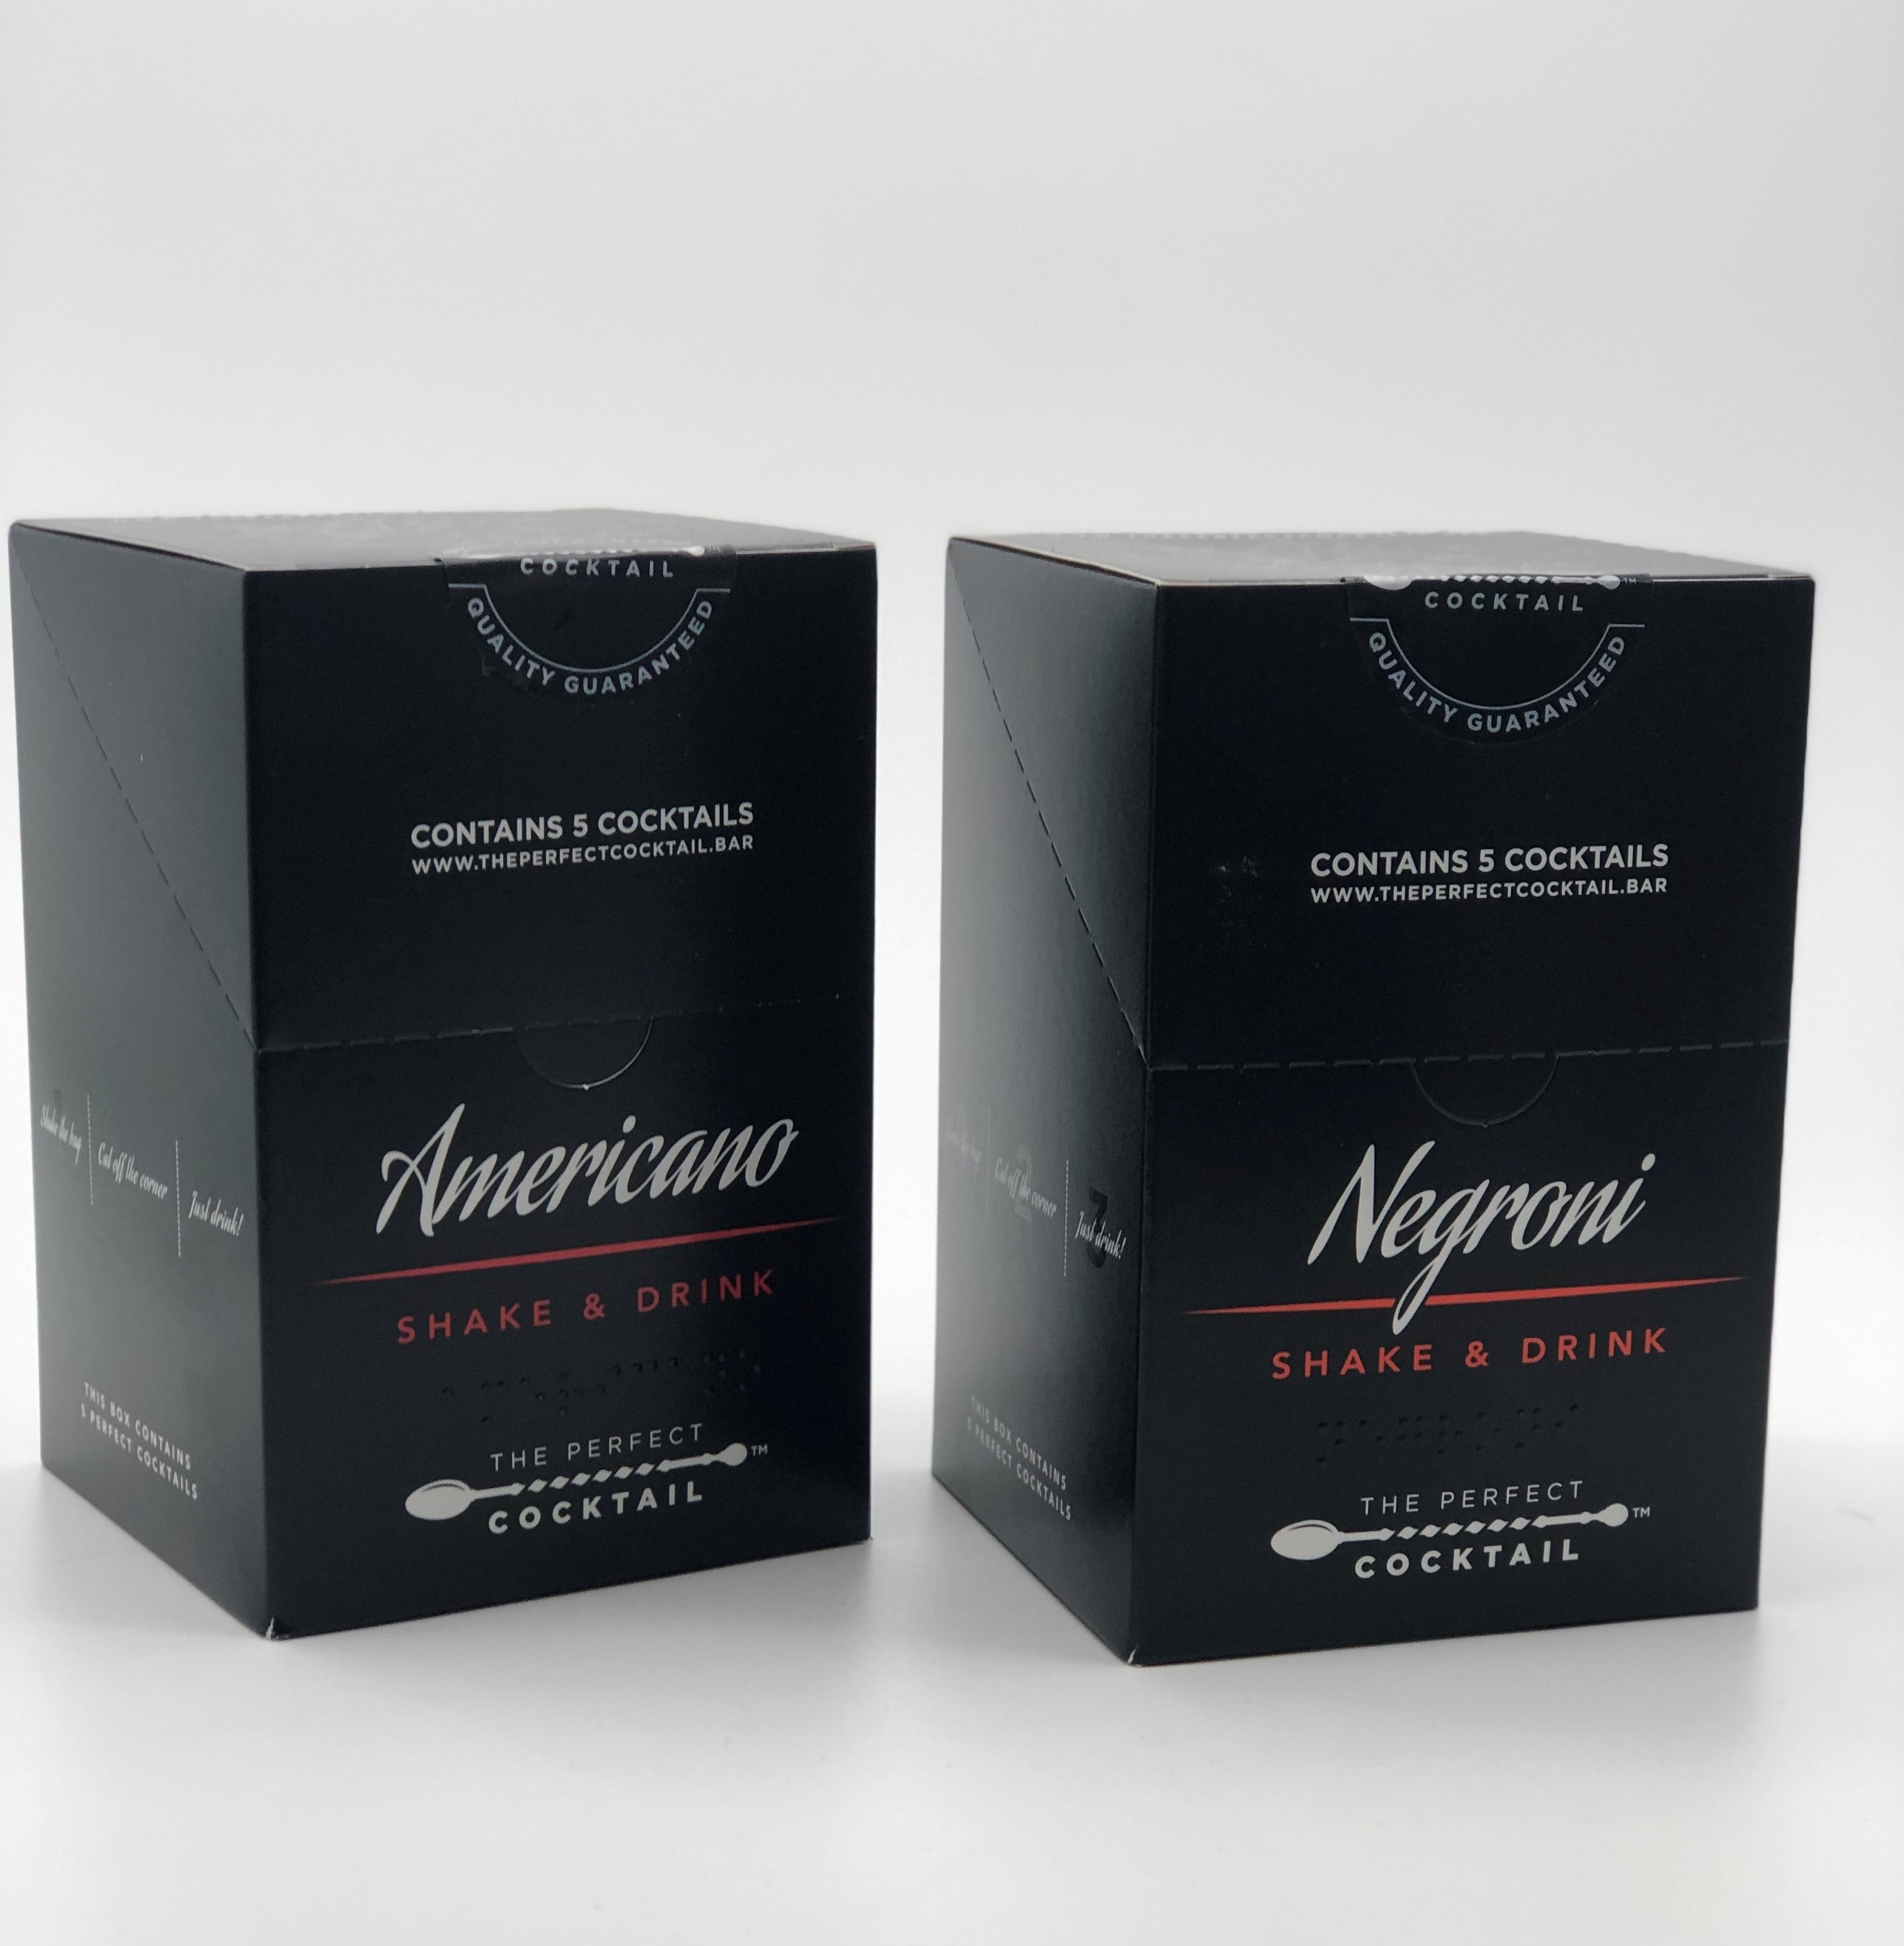 The Perfect Cocktail Negroni Variety Pack